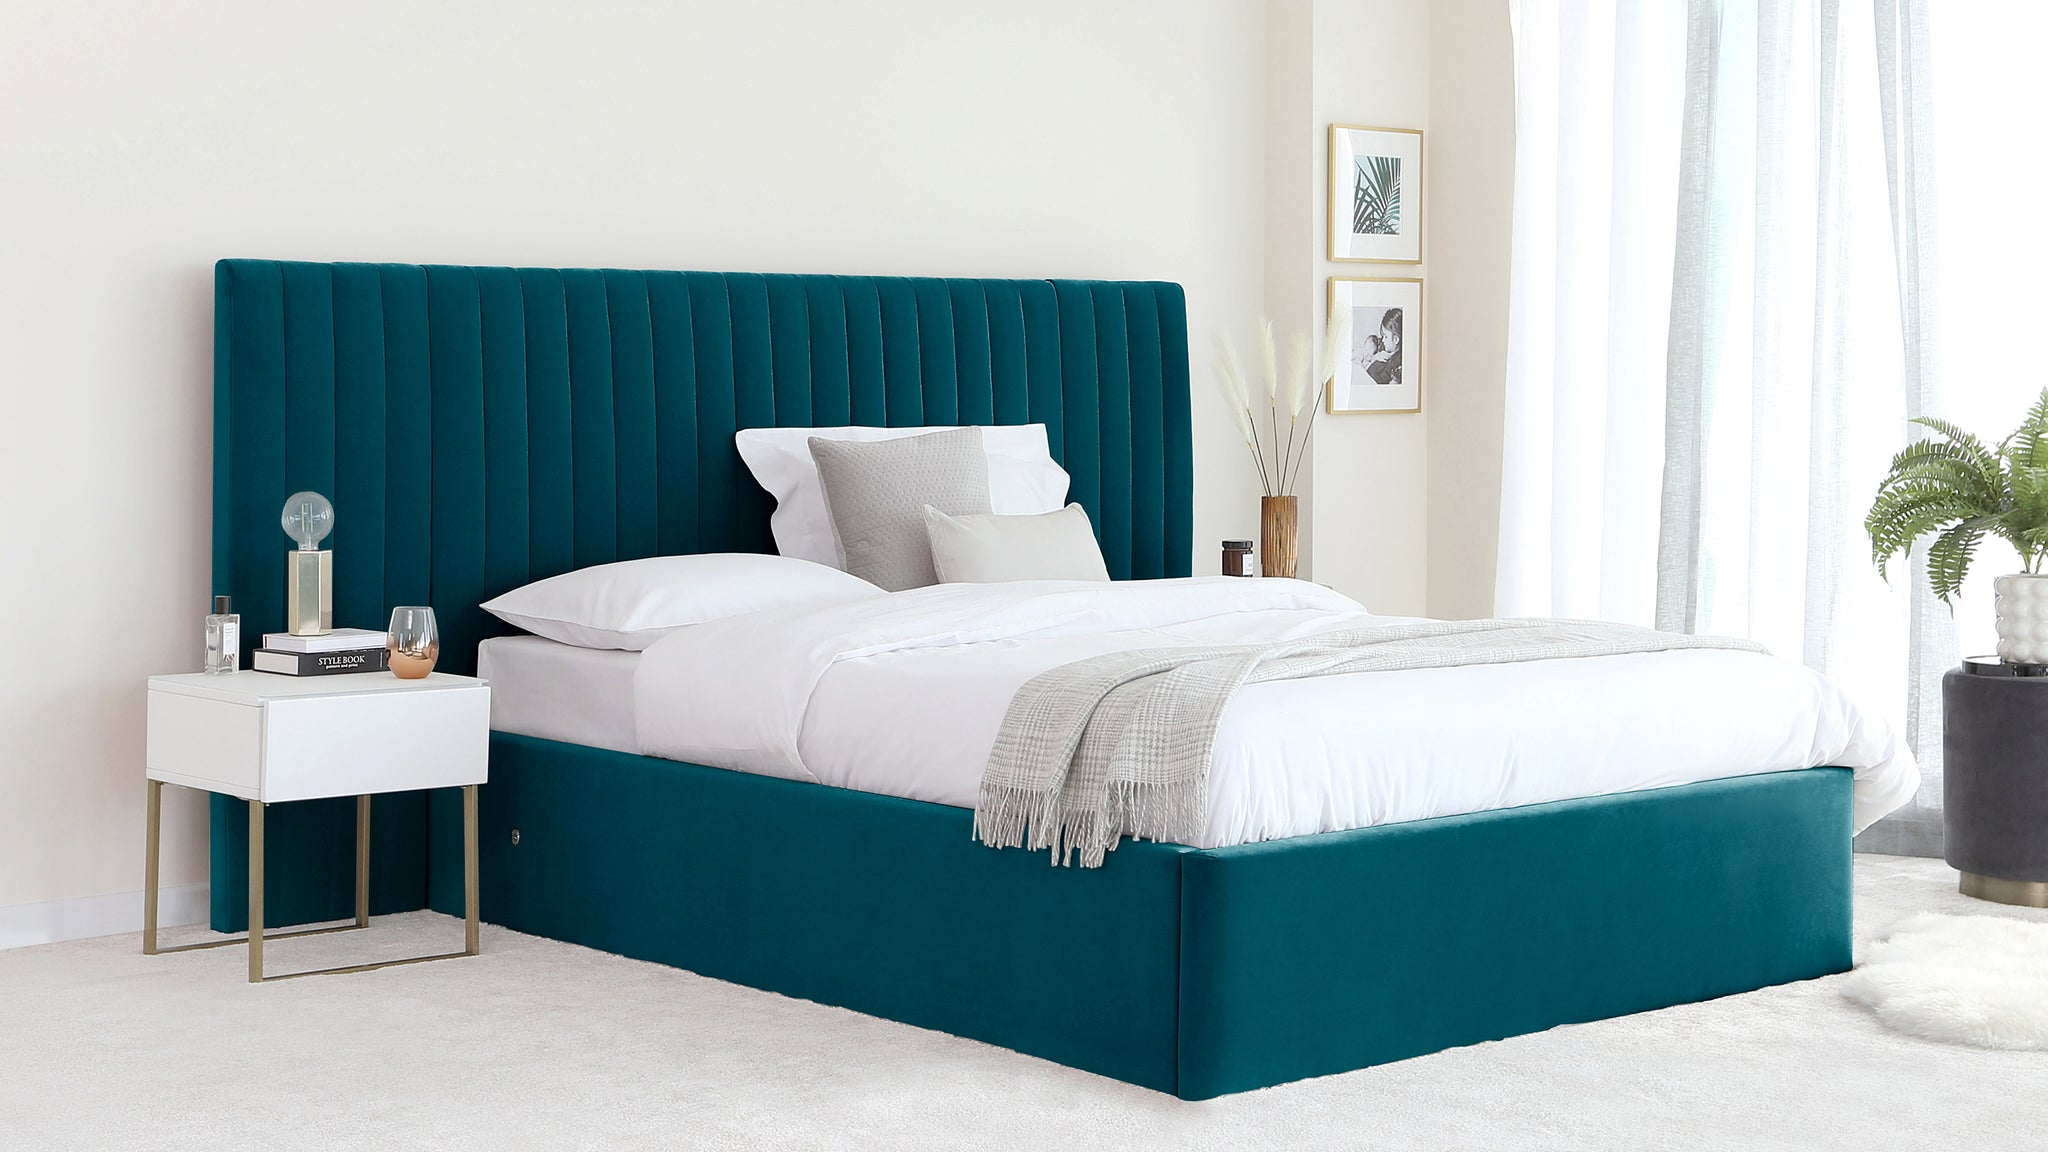 Picture of: King Size Beds Modern King Size Beds With Storage By Danetti